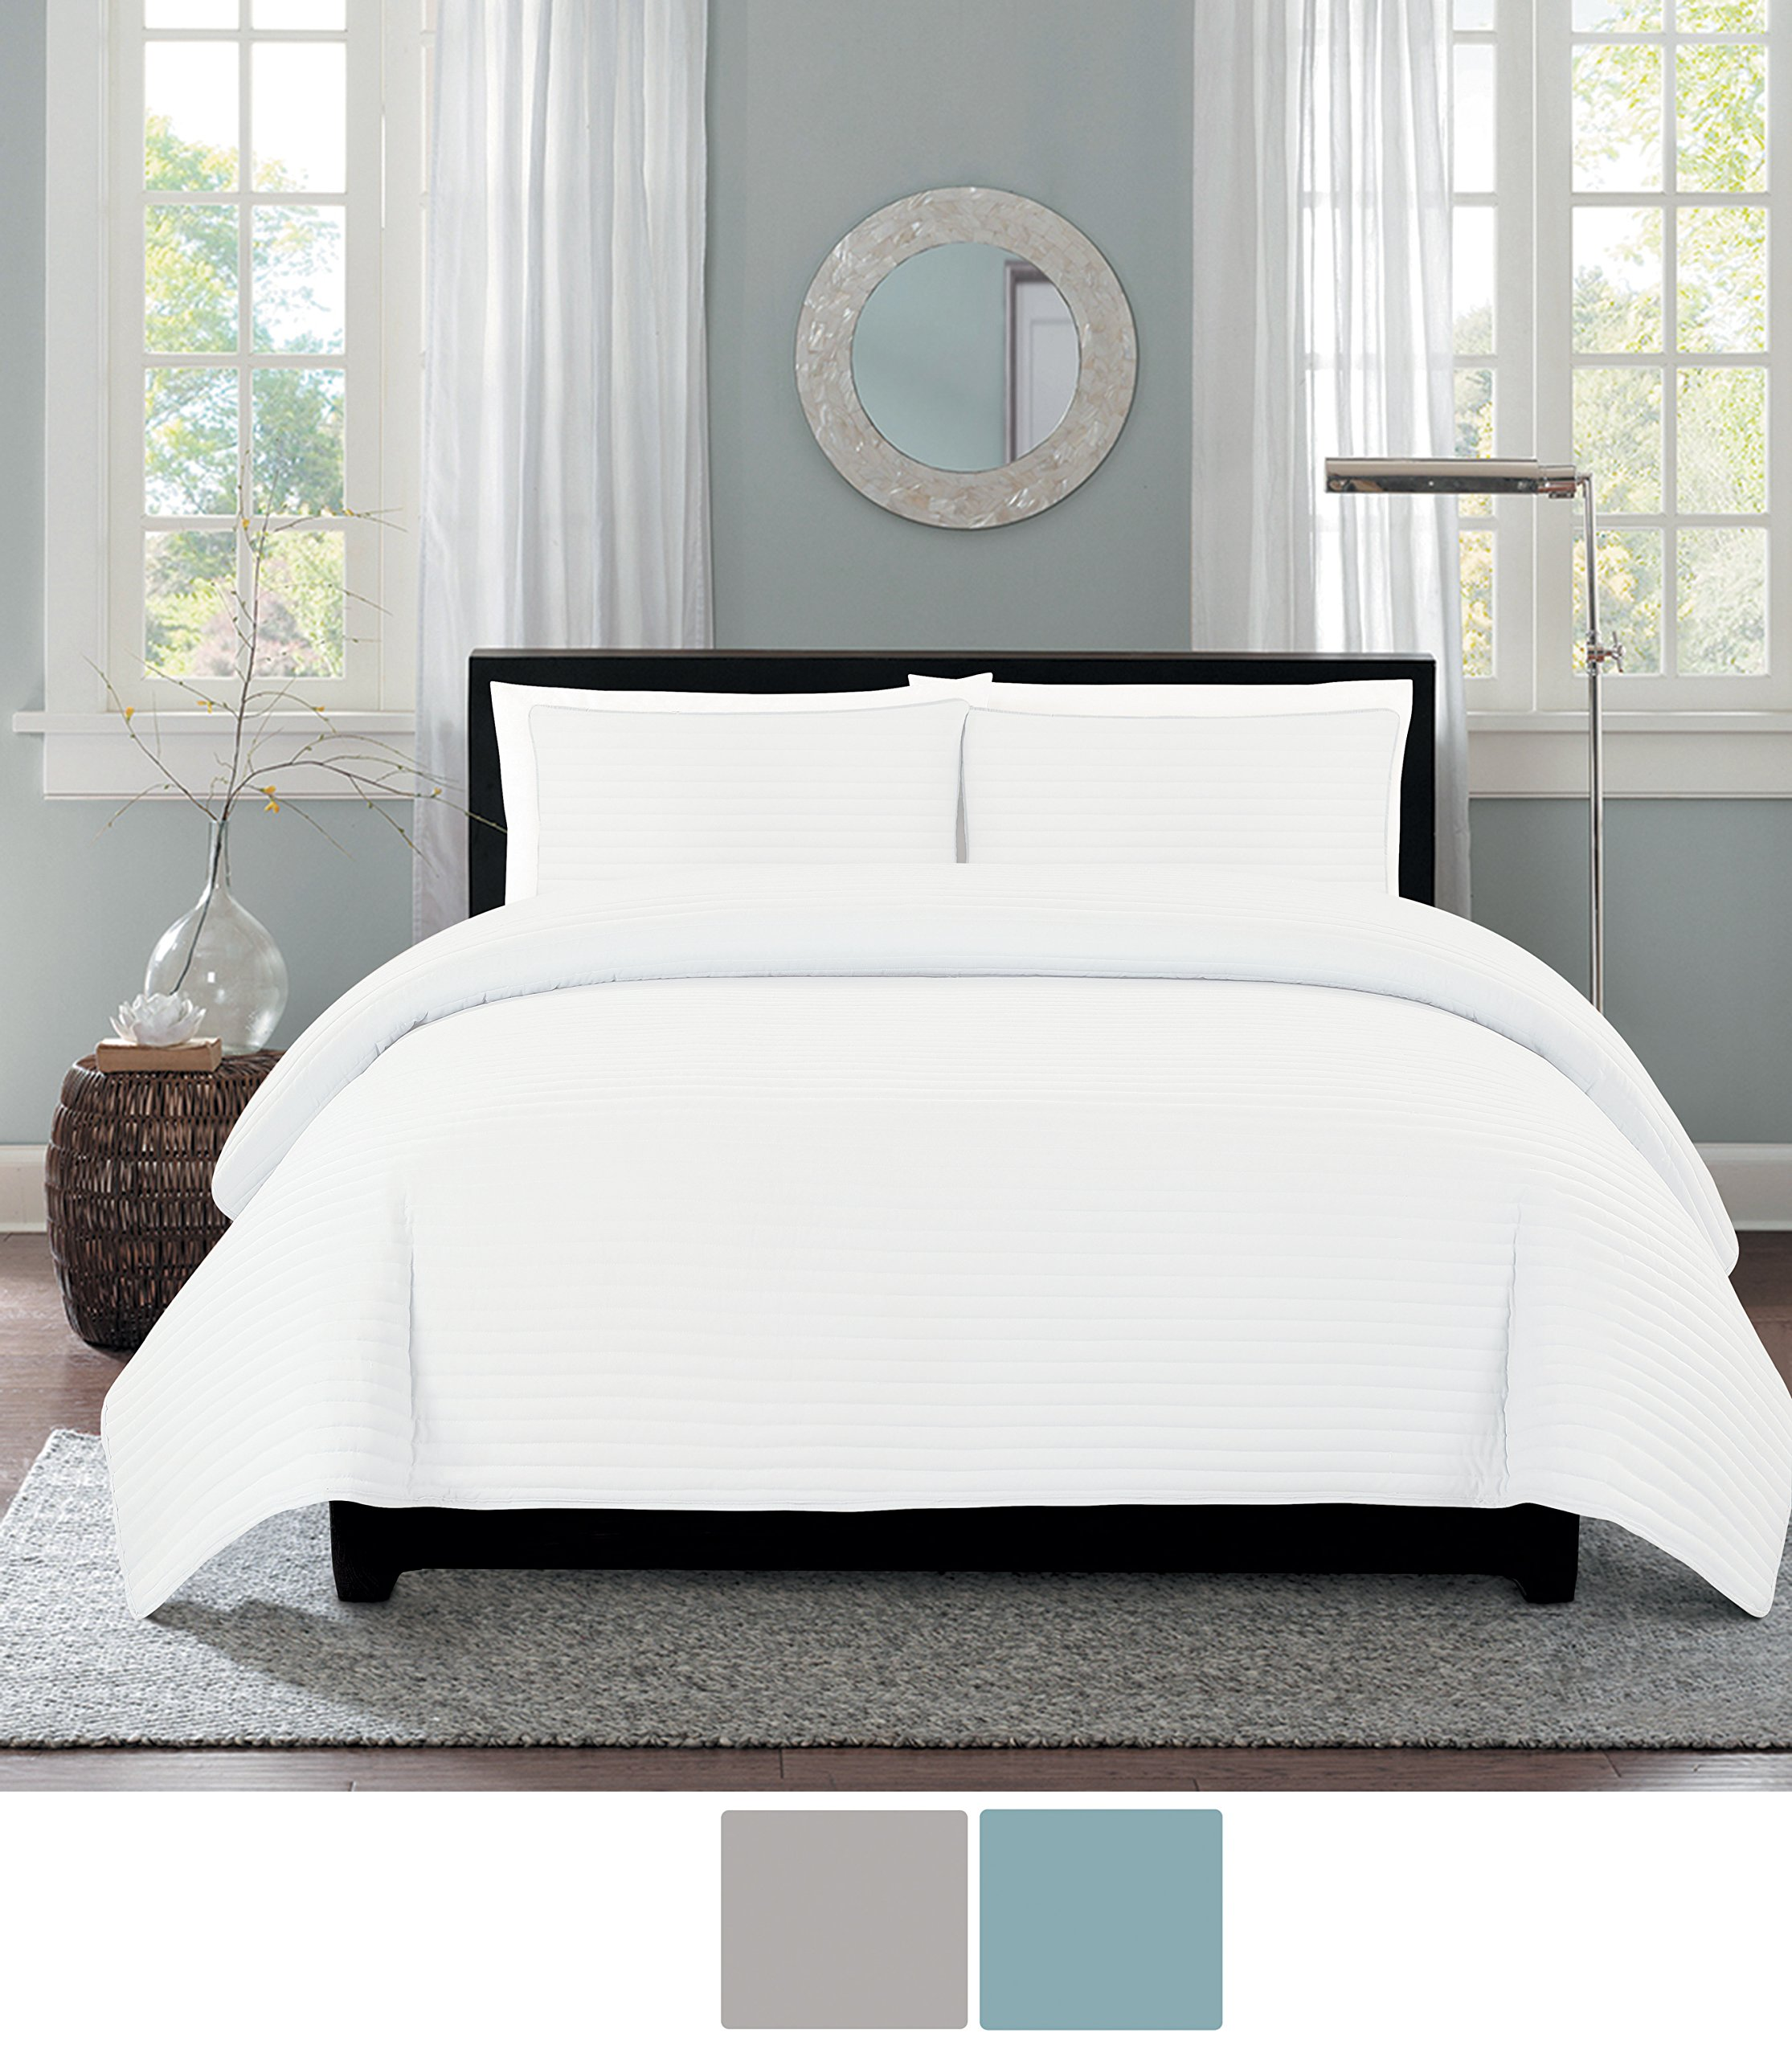 NC Home Fashions One Inch Channel quilt set, King, Bright White by NC Home Fashions Inc. (Image #1)